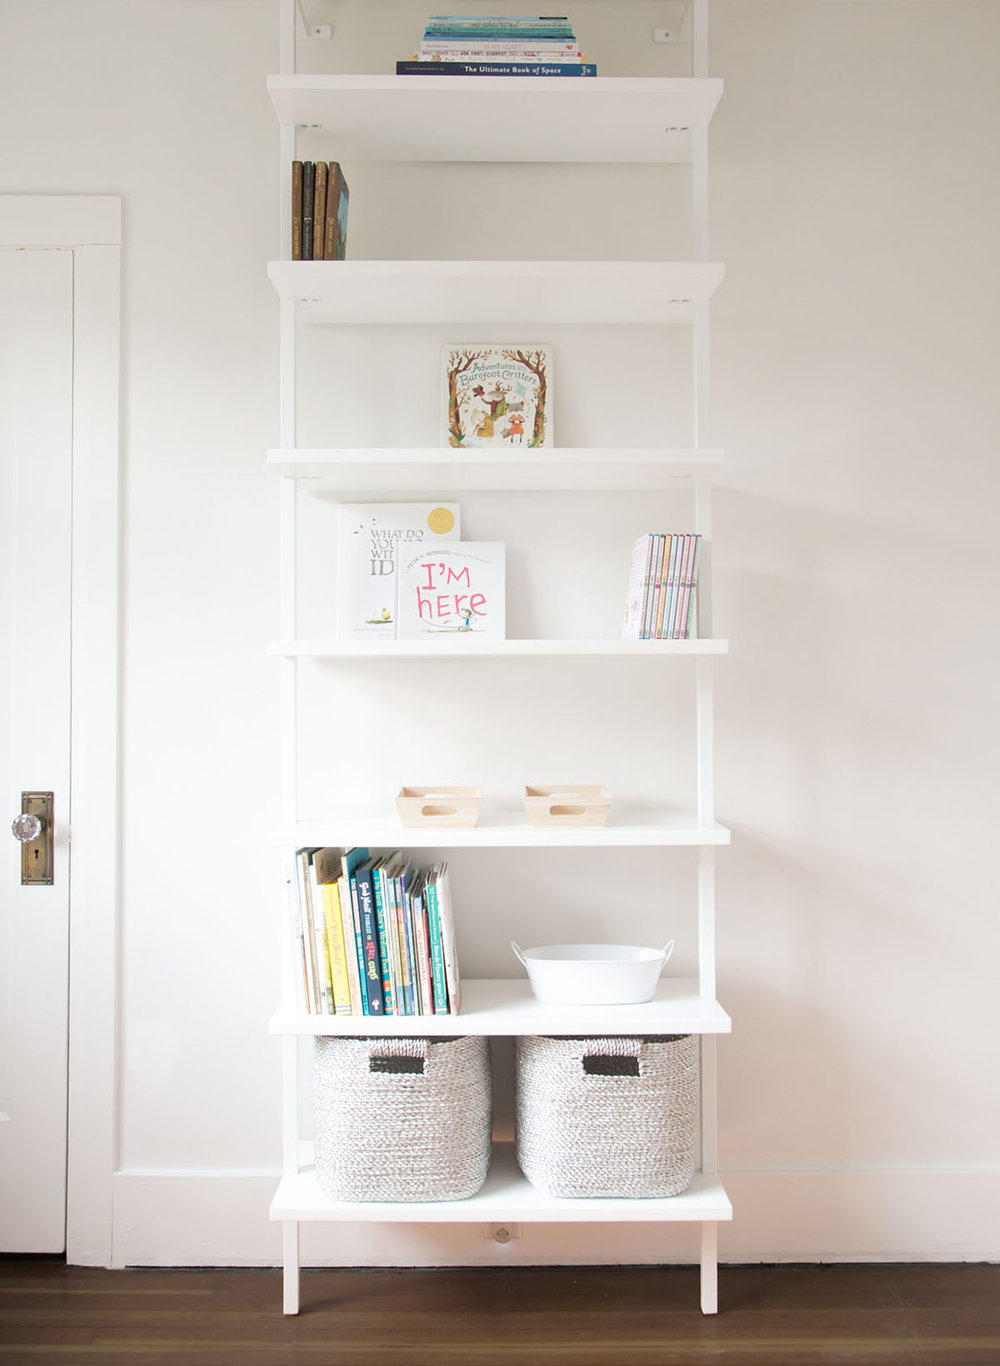 cb2 stairway white shelf with books and baskets - this is step 3